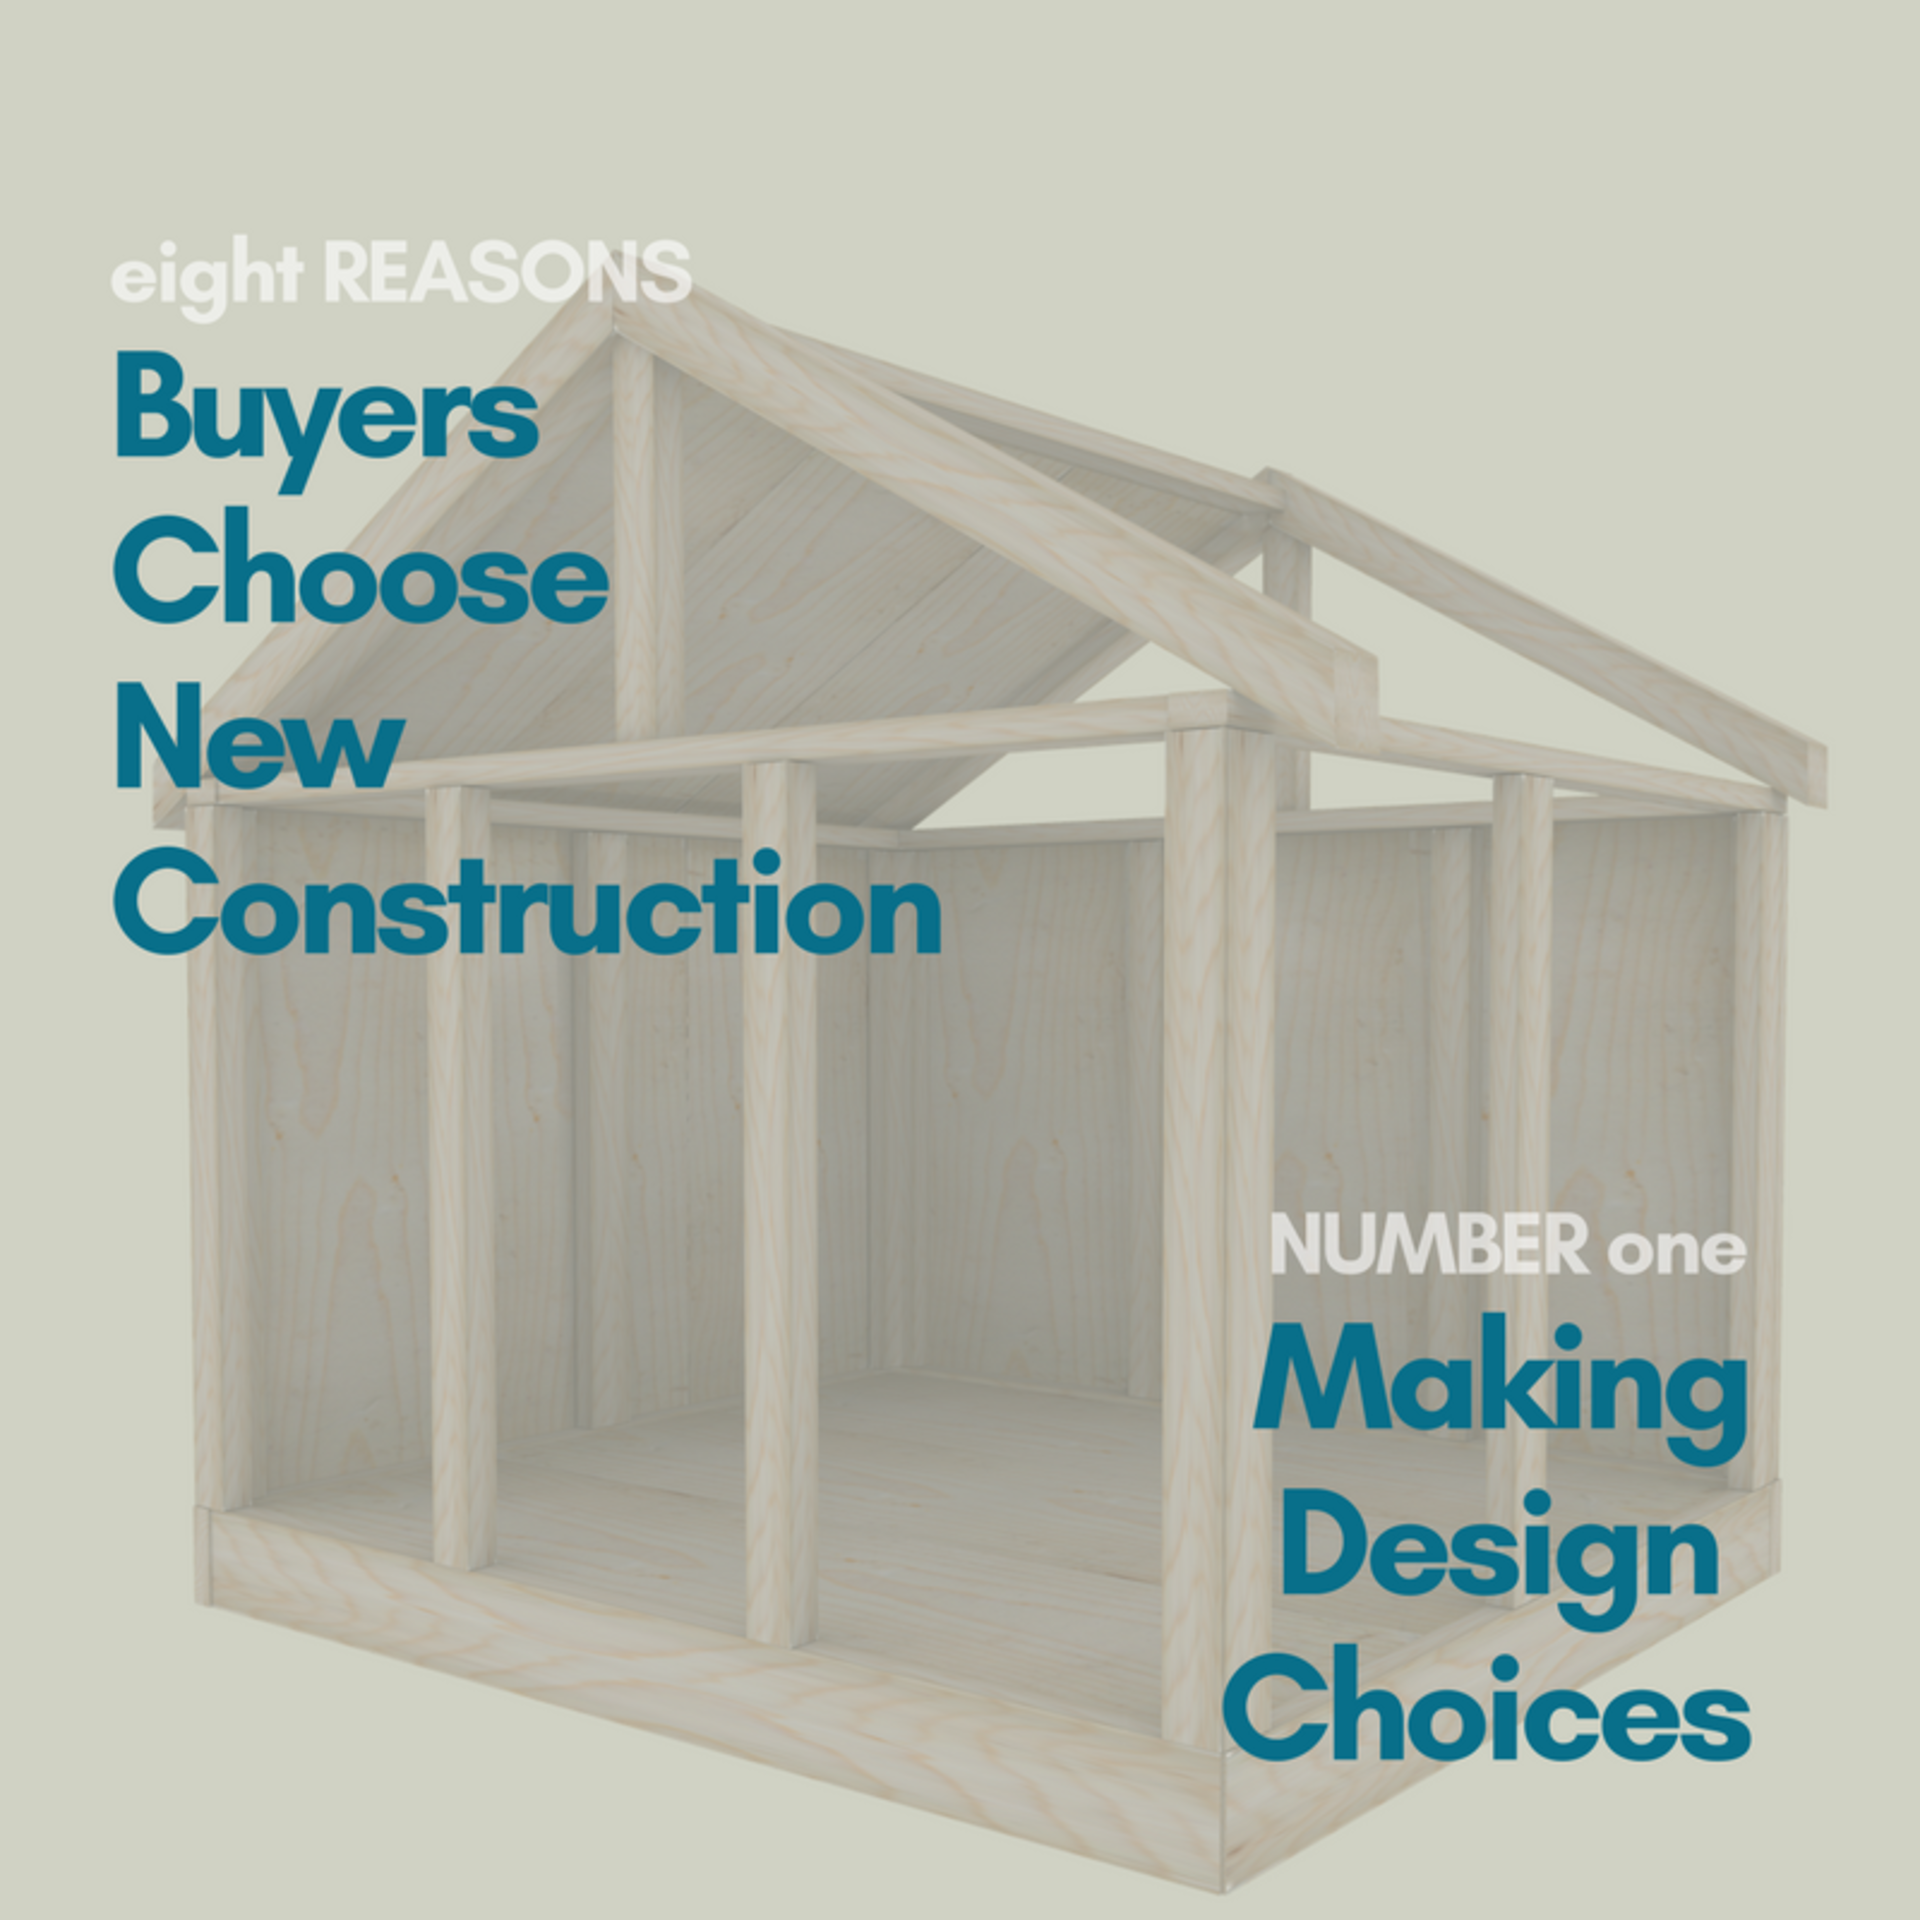 8 REASON BUYERS CHOOSE NEW CONSTRUCTION – DESIGN CHOICES